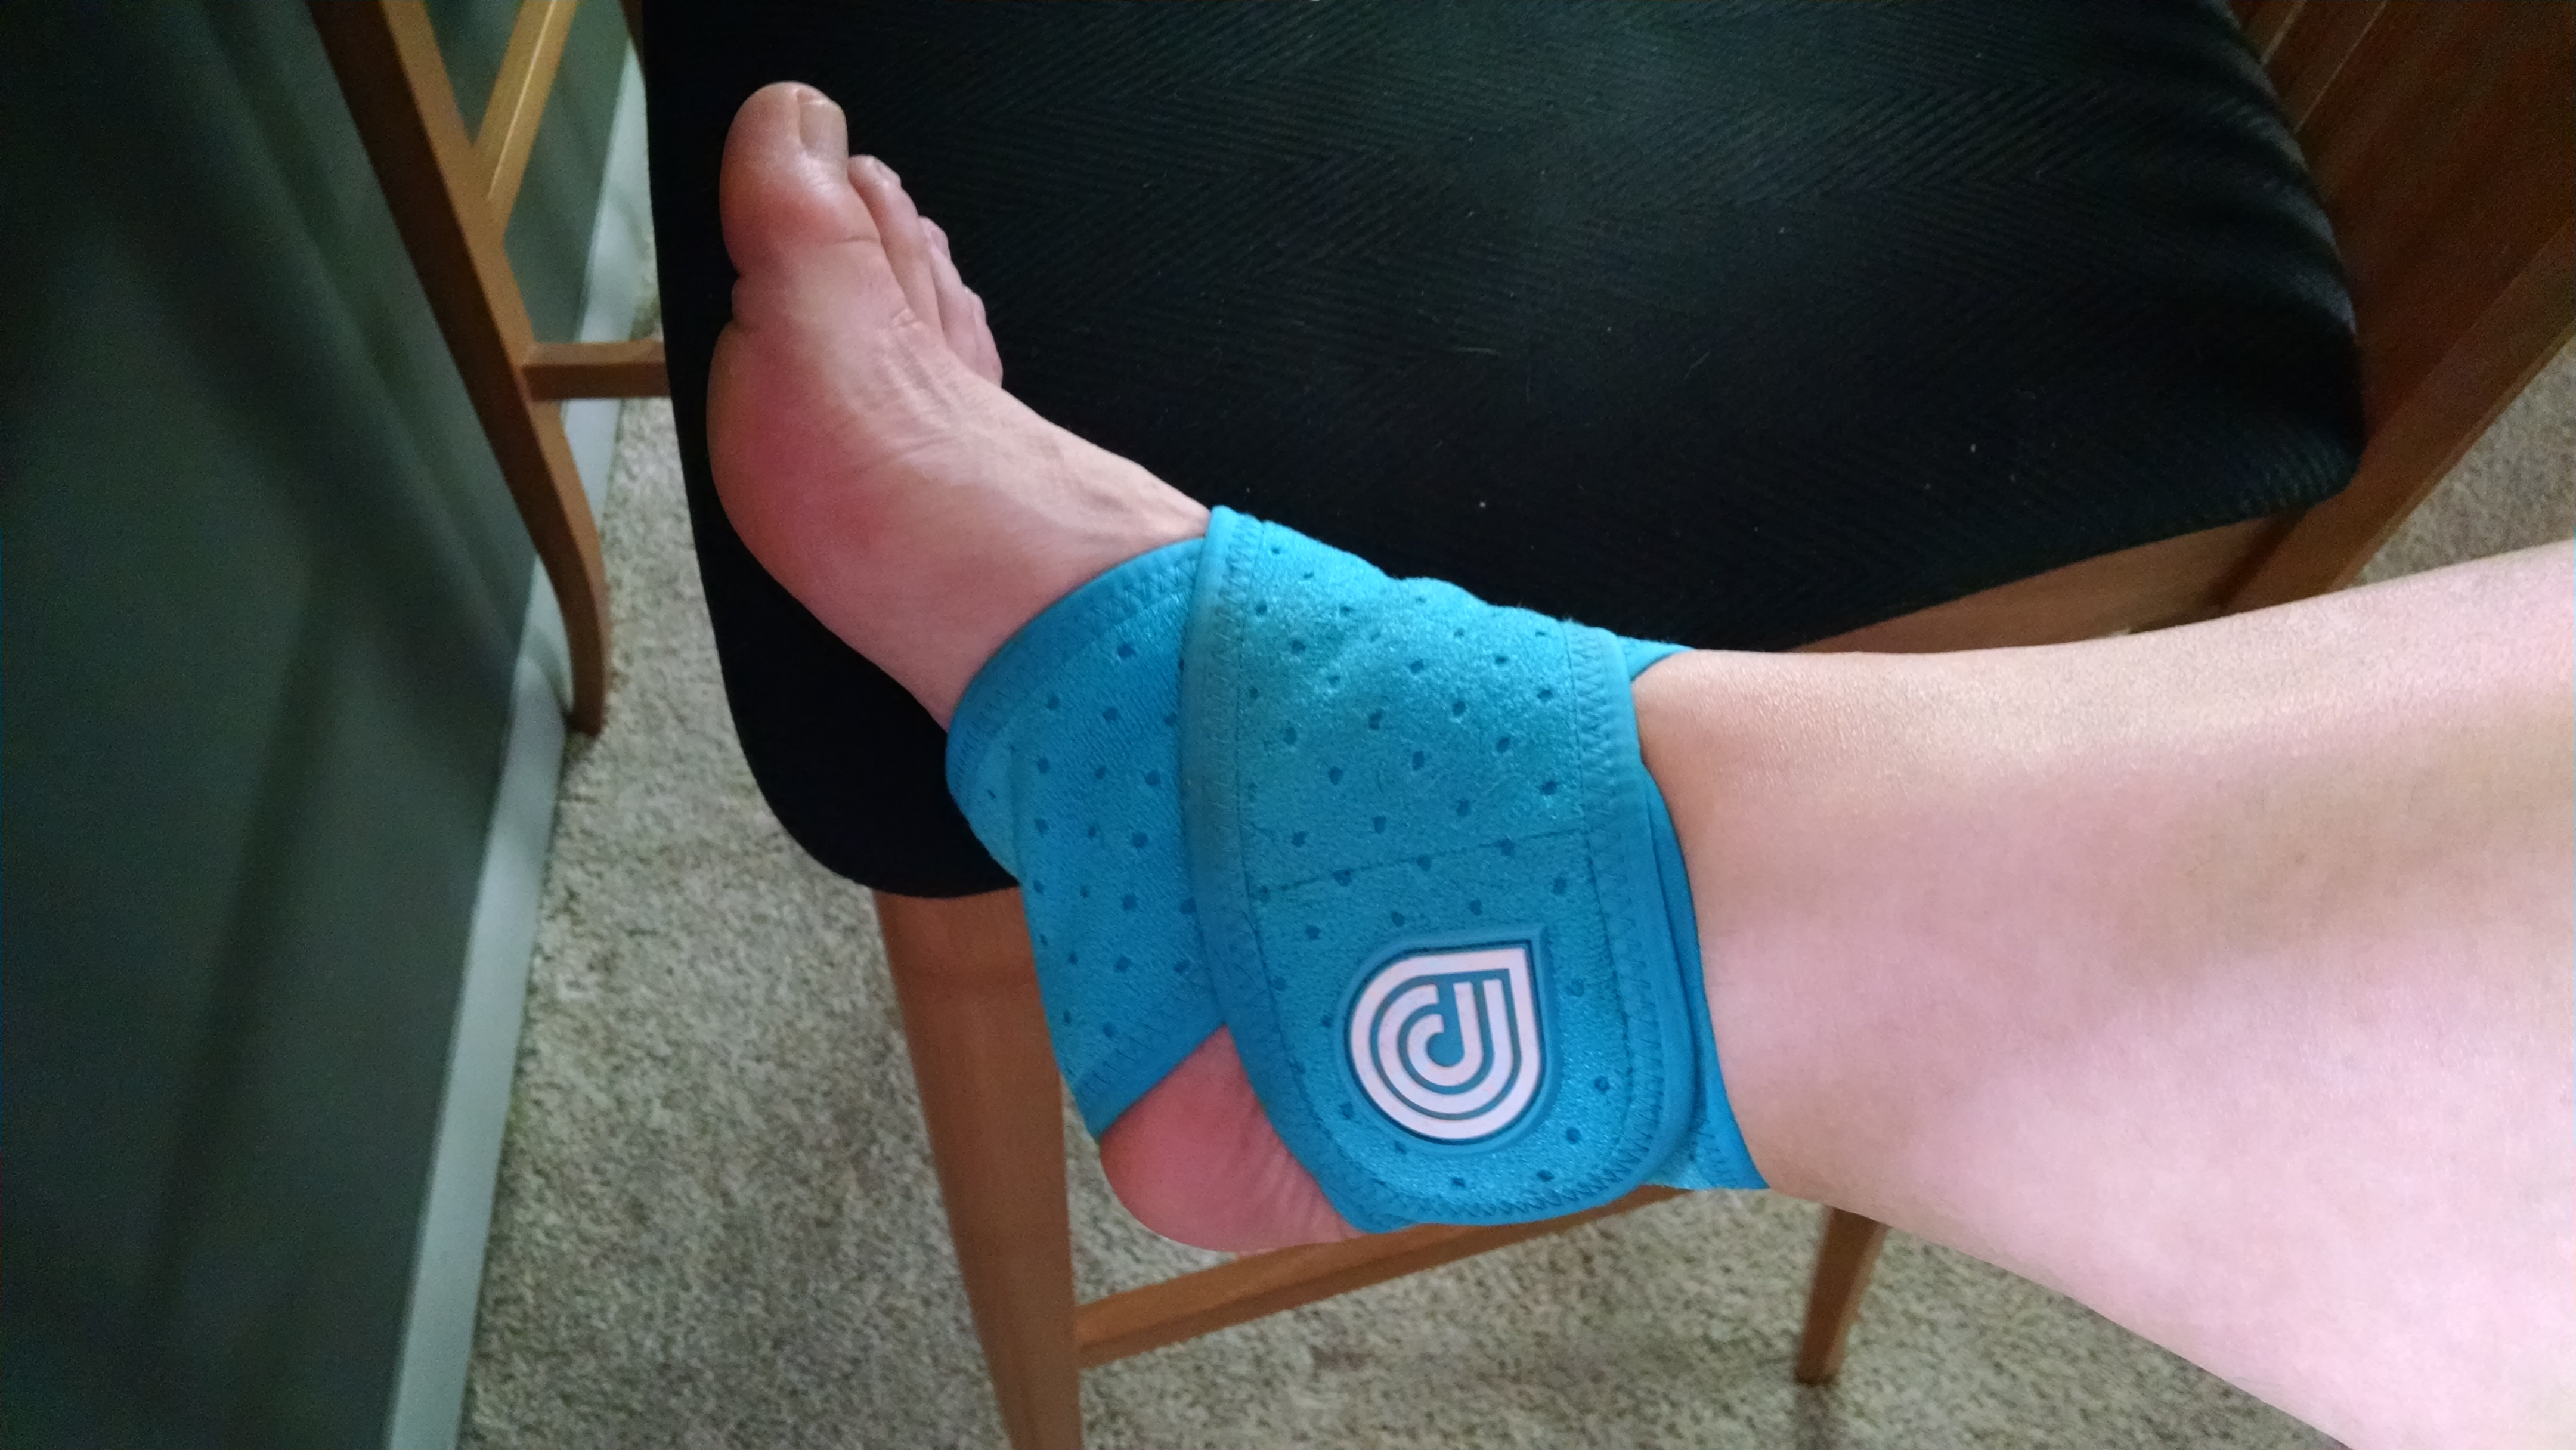 dr cool wraps product review the casual runner